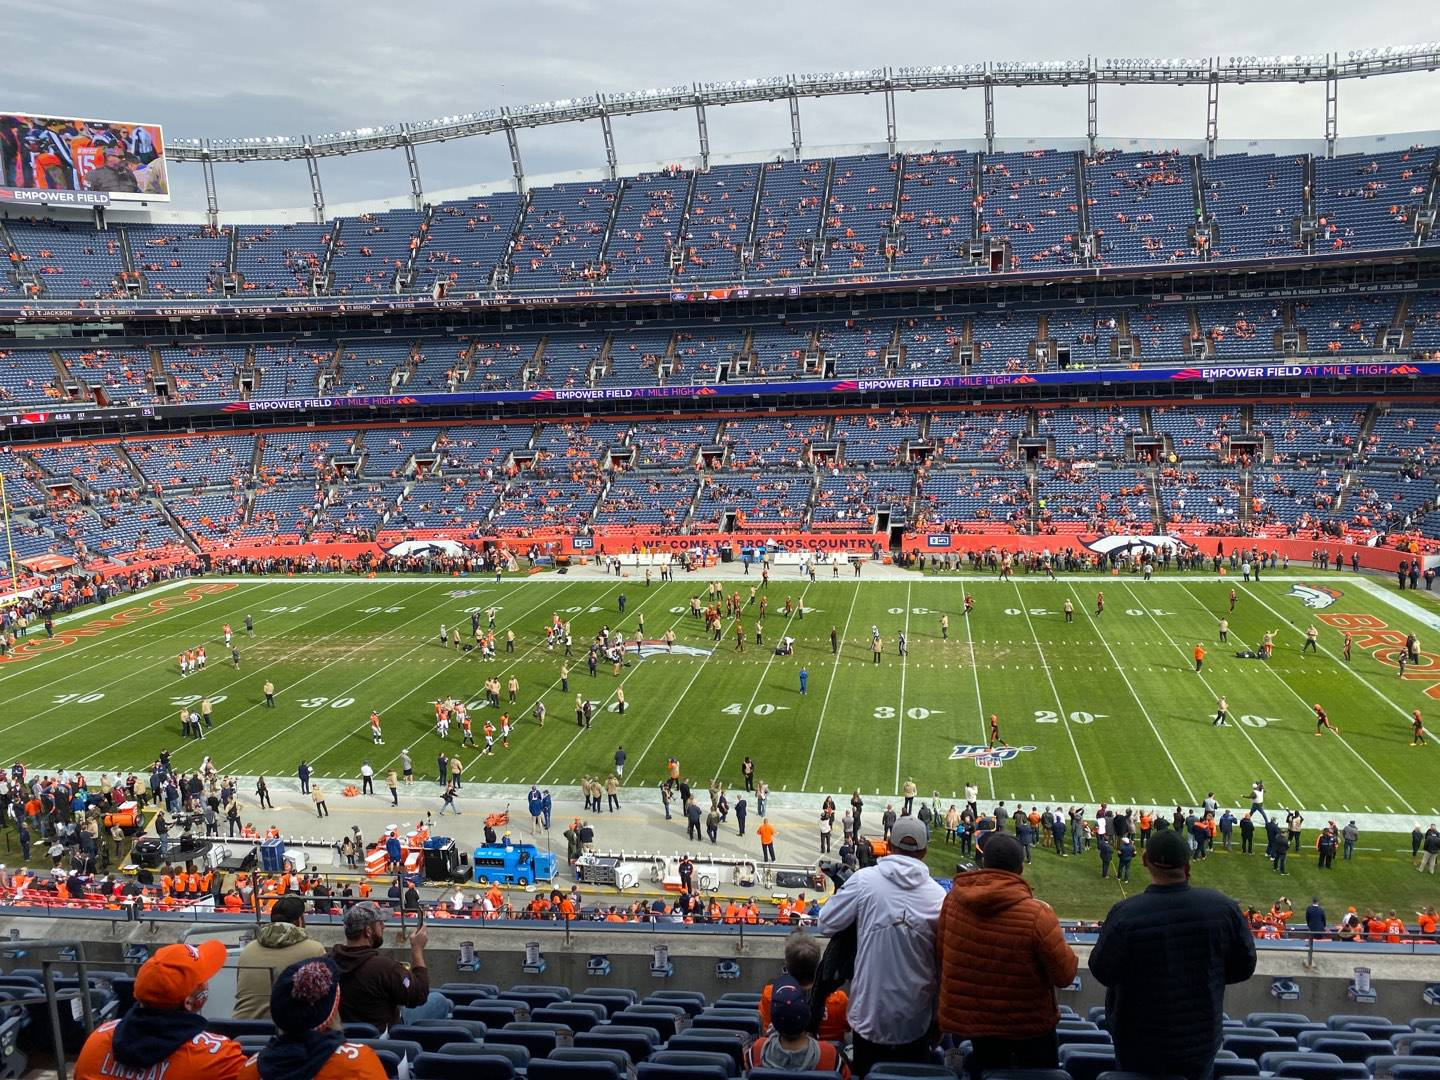 Empower Field at Mile High Stadium Section 307 Row 10 Seat 7